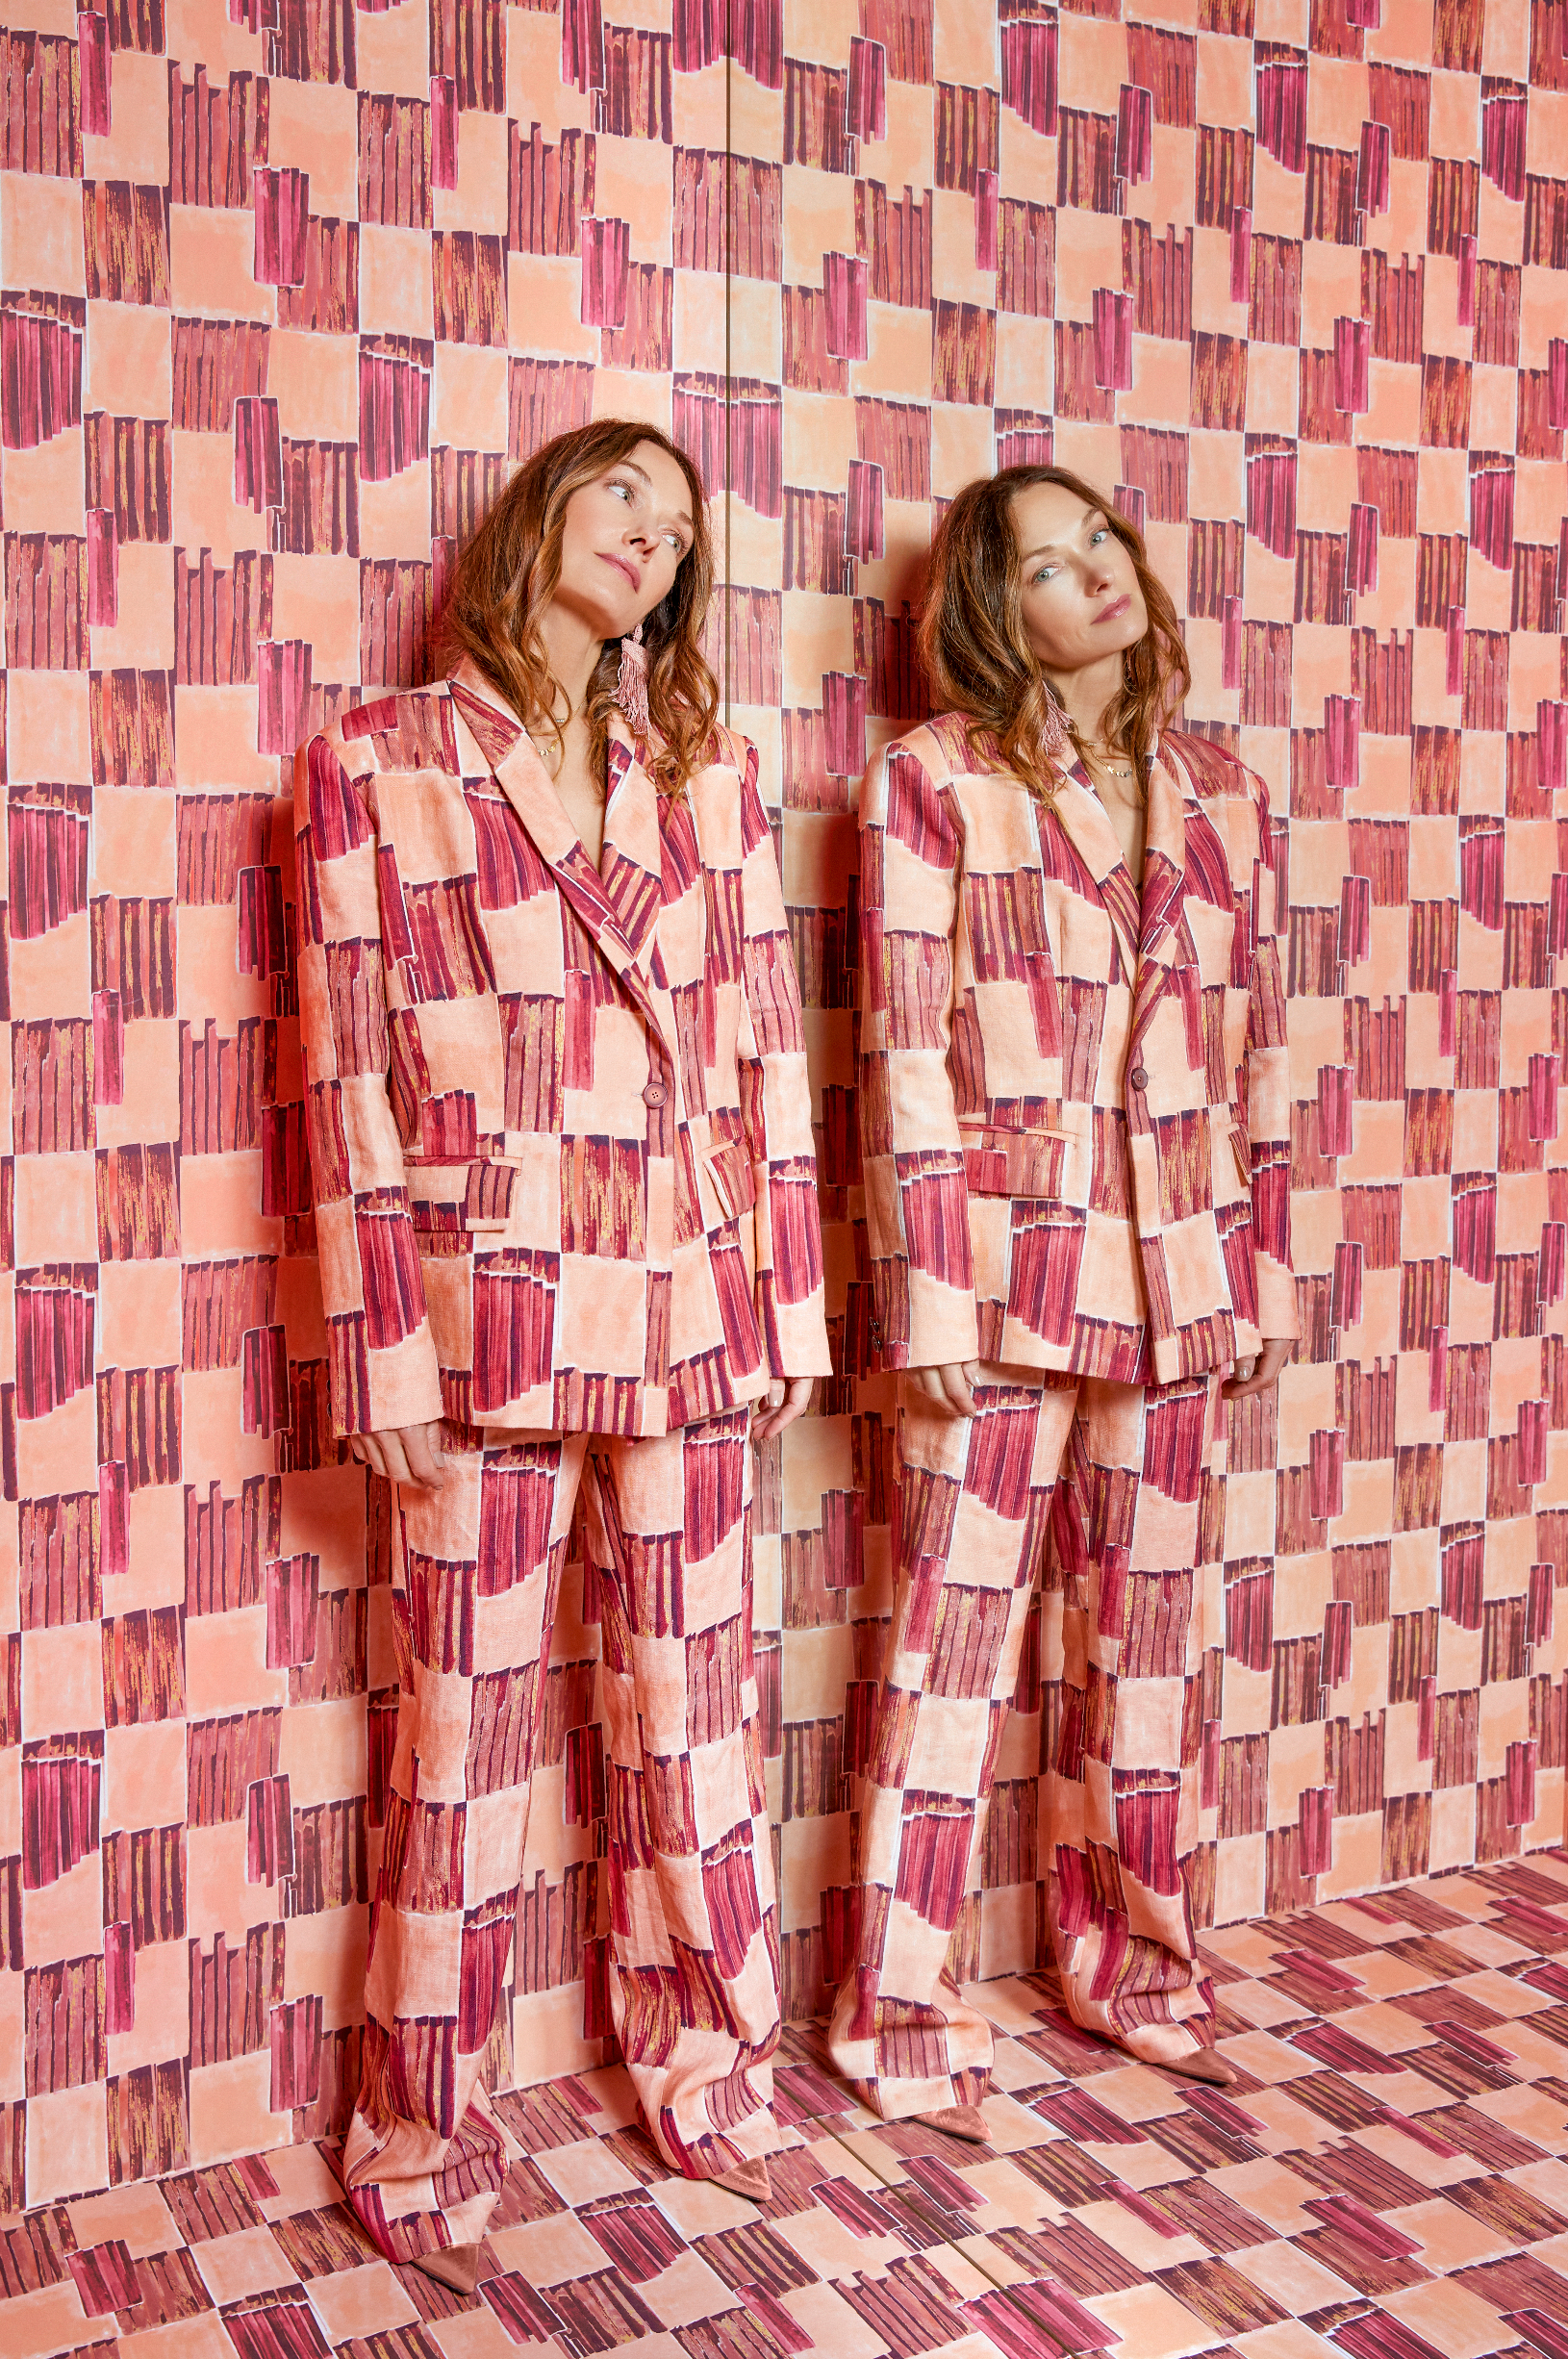 Kelly Wearstler Wallpaper and Fabric Collection in 2020 ...